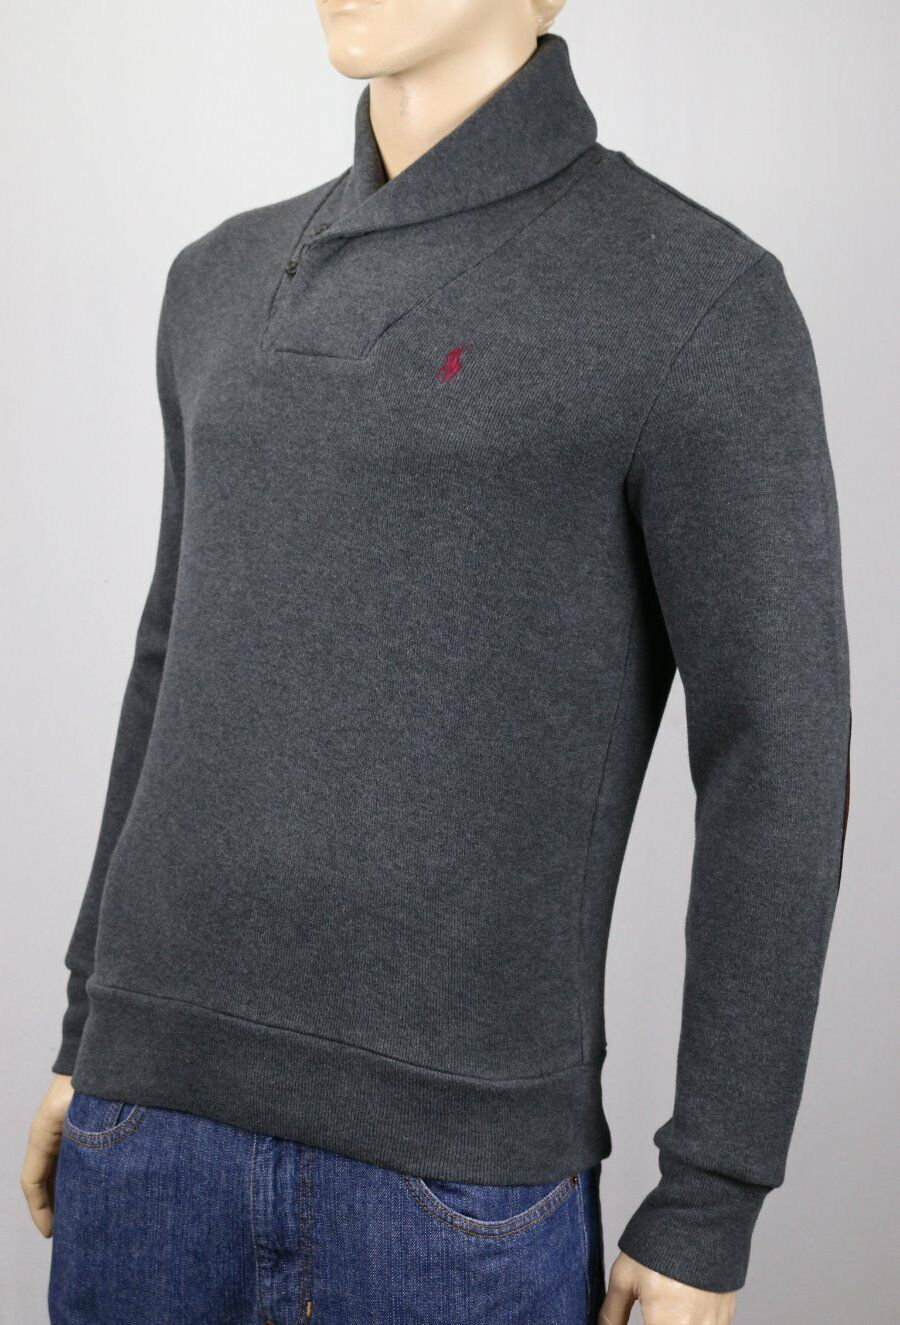 Polo Ralph Lauren Grau Shawl Collar Sweater Suede Elbow Patches NWT 125